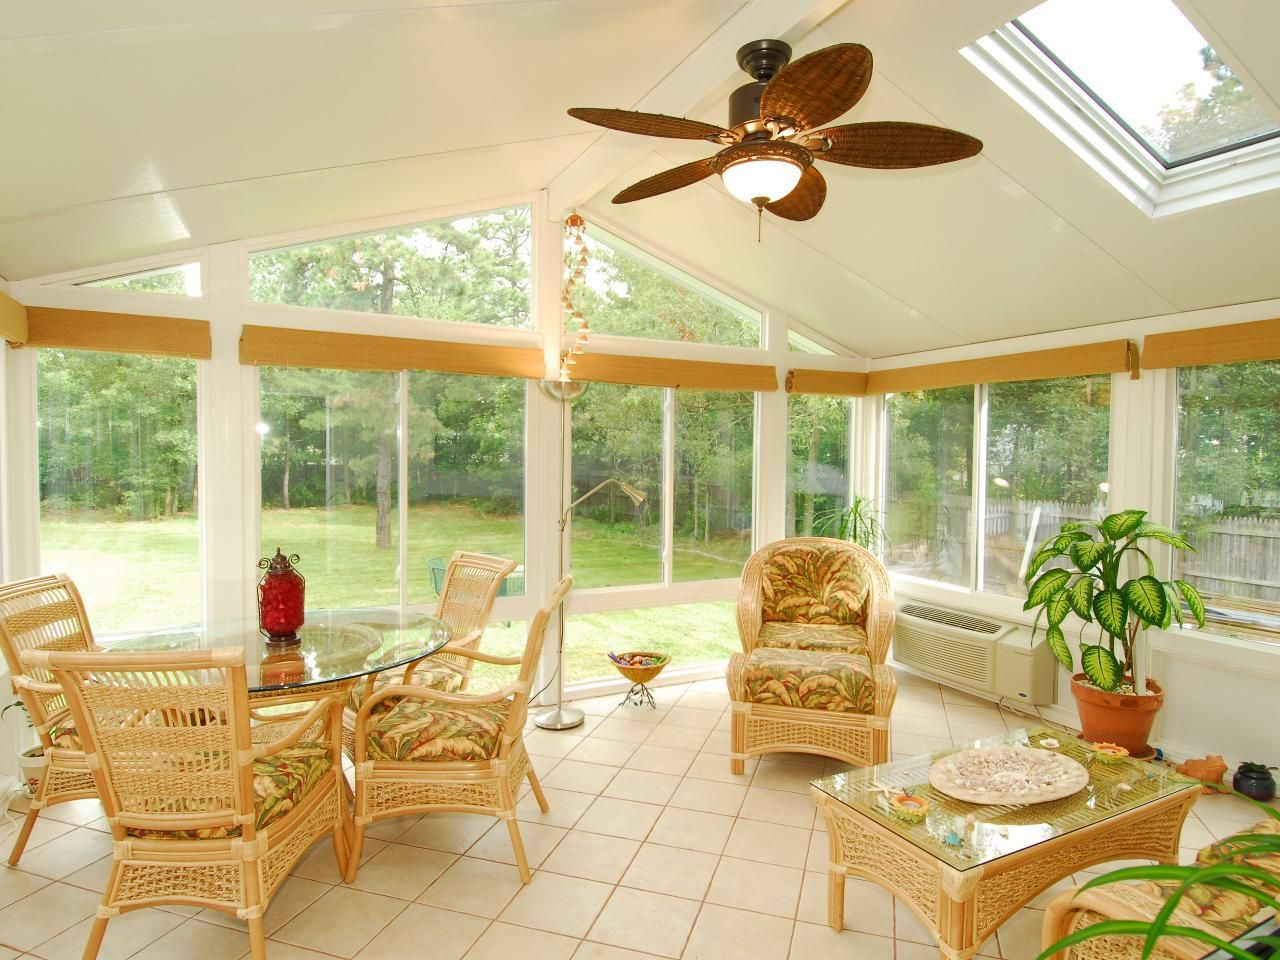 Beach Inspired Sunrooms Decorating And Design Ideas For Interior Rooms Hgtv